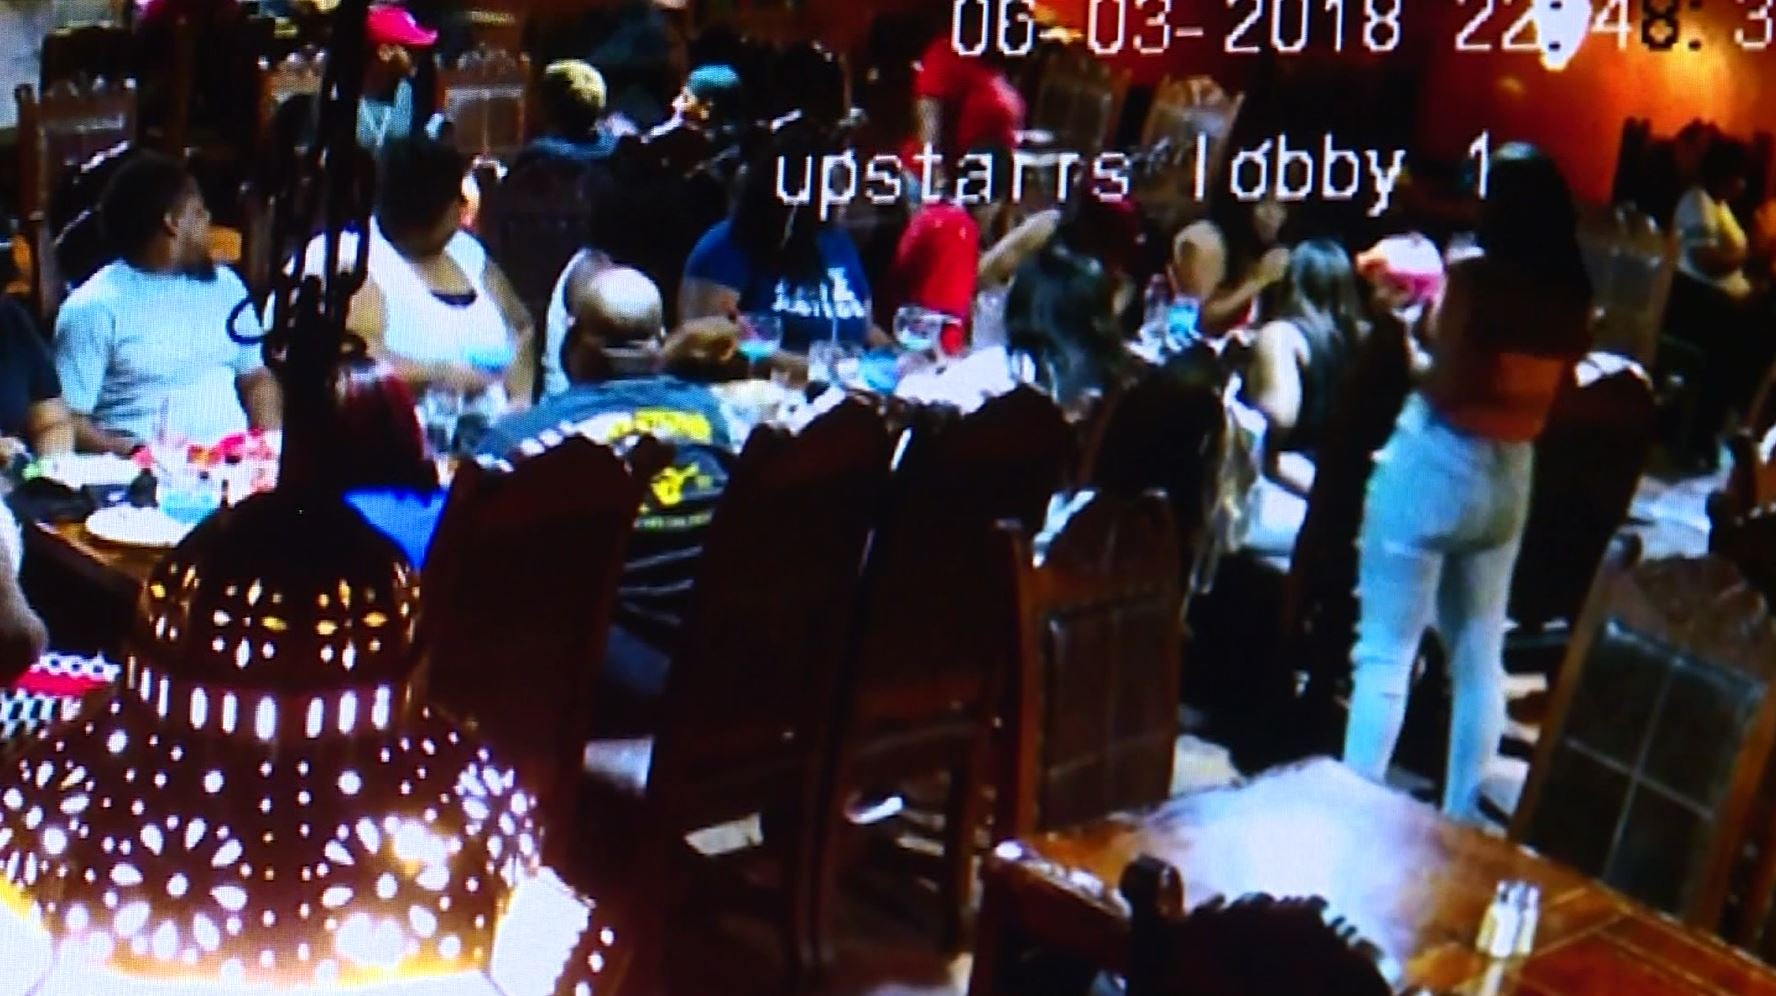 Image of surveillance video of teens eating before they left without paying.